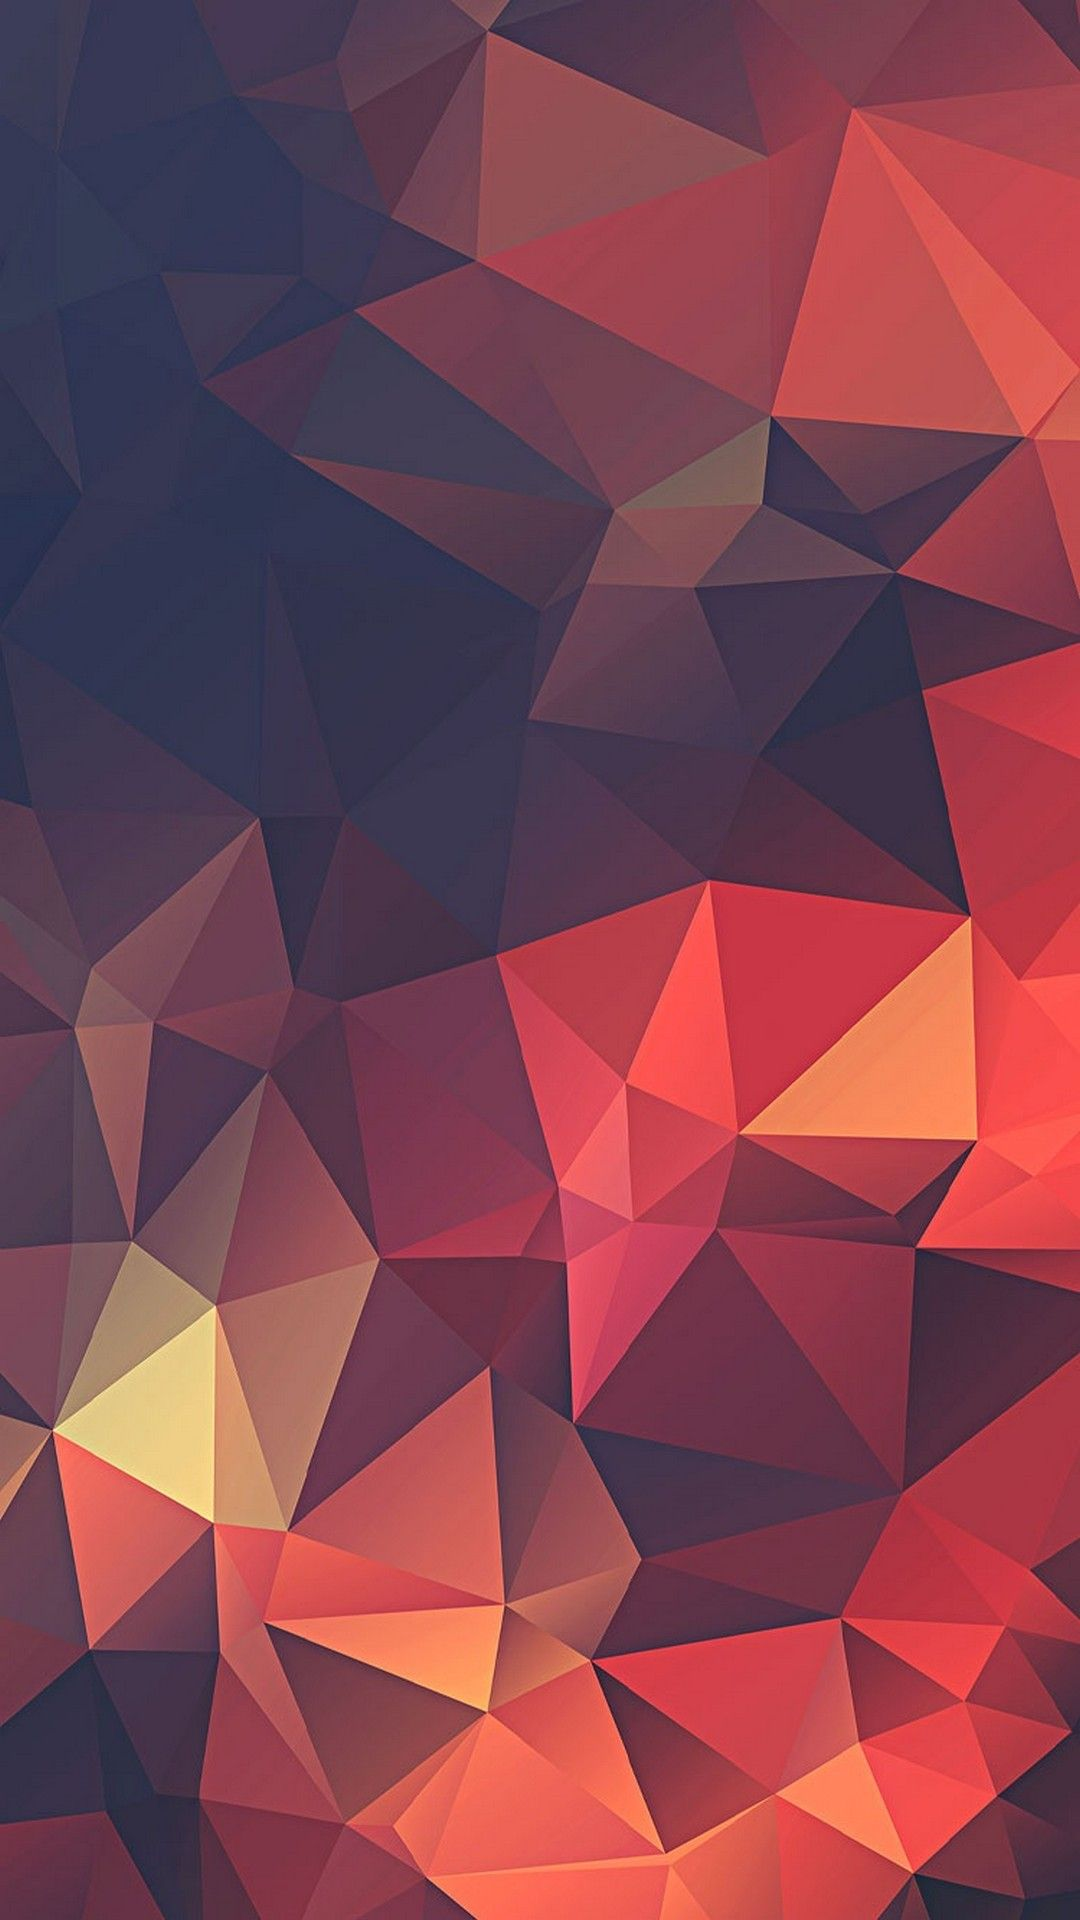 Abstract Vector Iphone Wallpaper Hd Iphone 6 Wallpaper